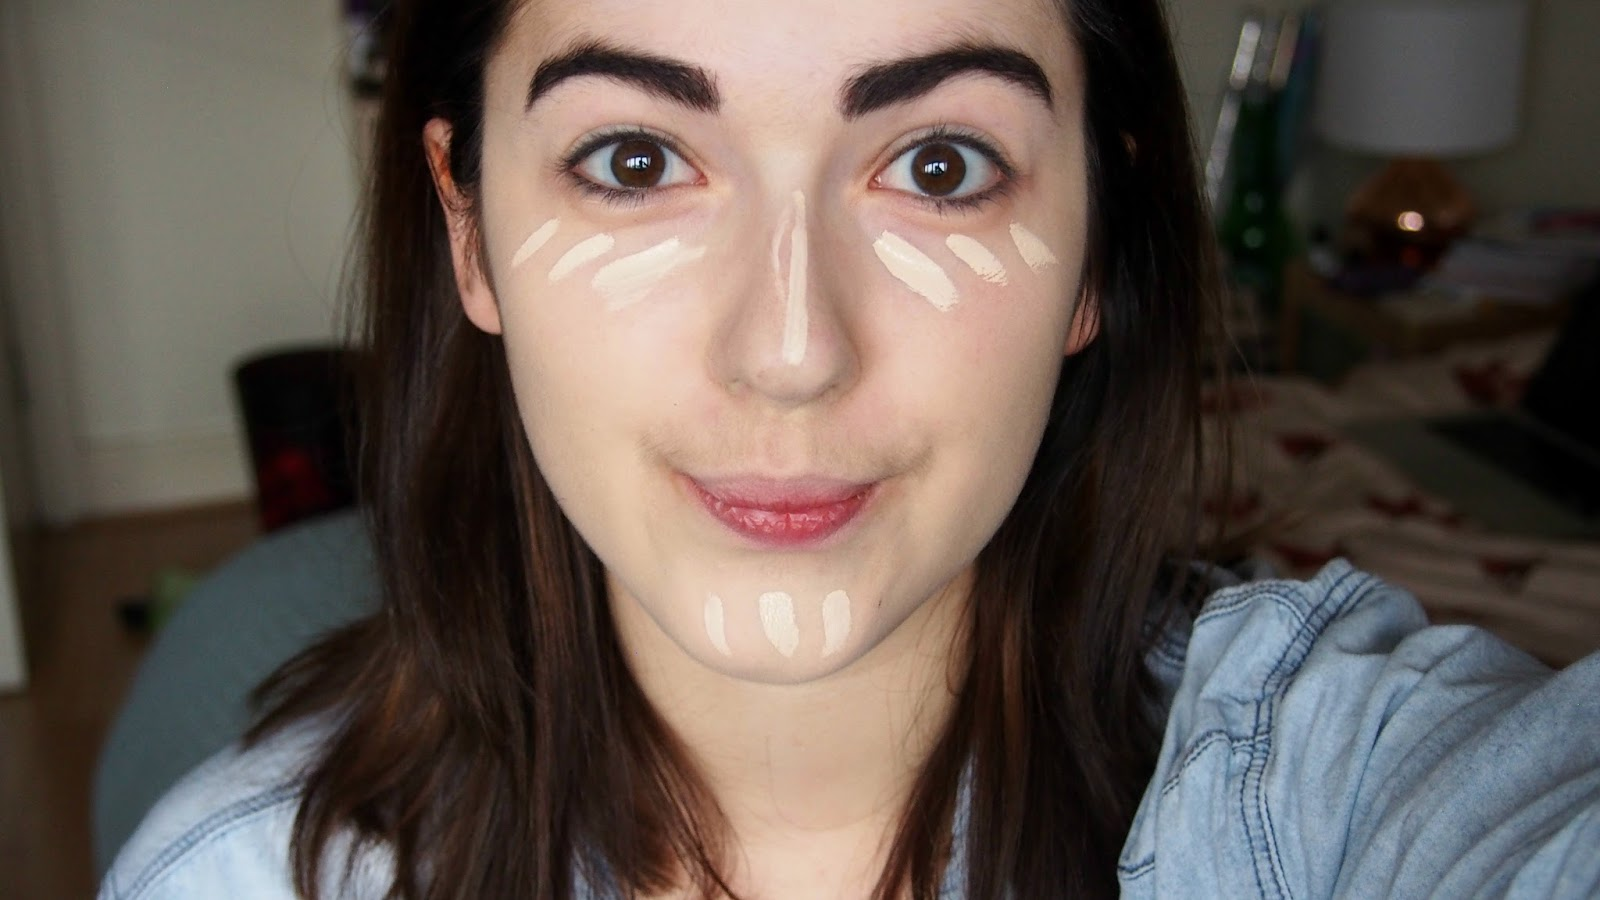 Before photo of concealer